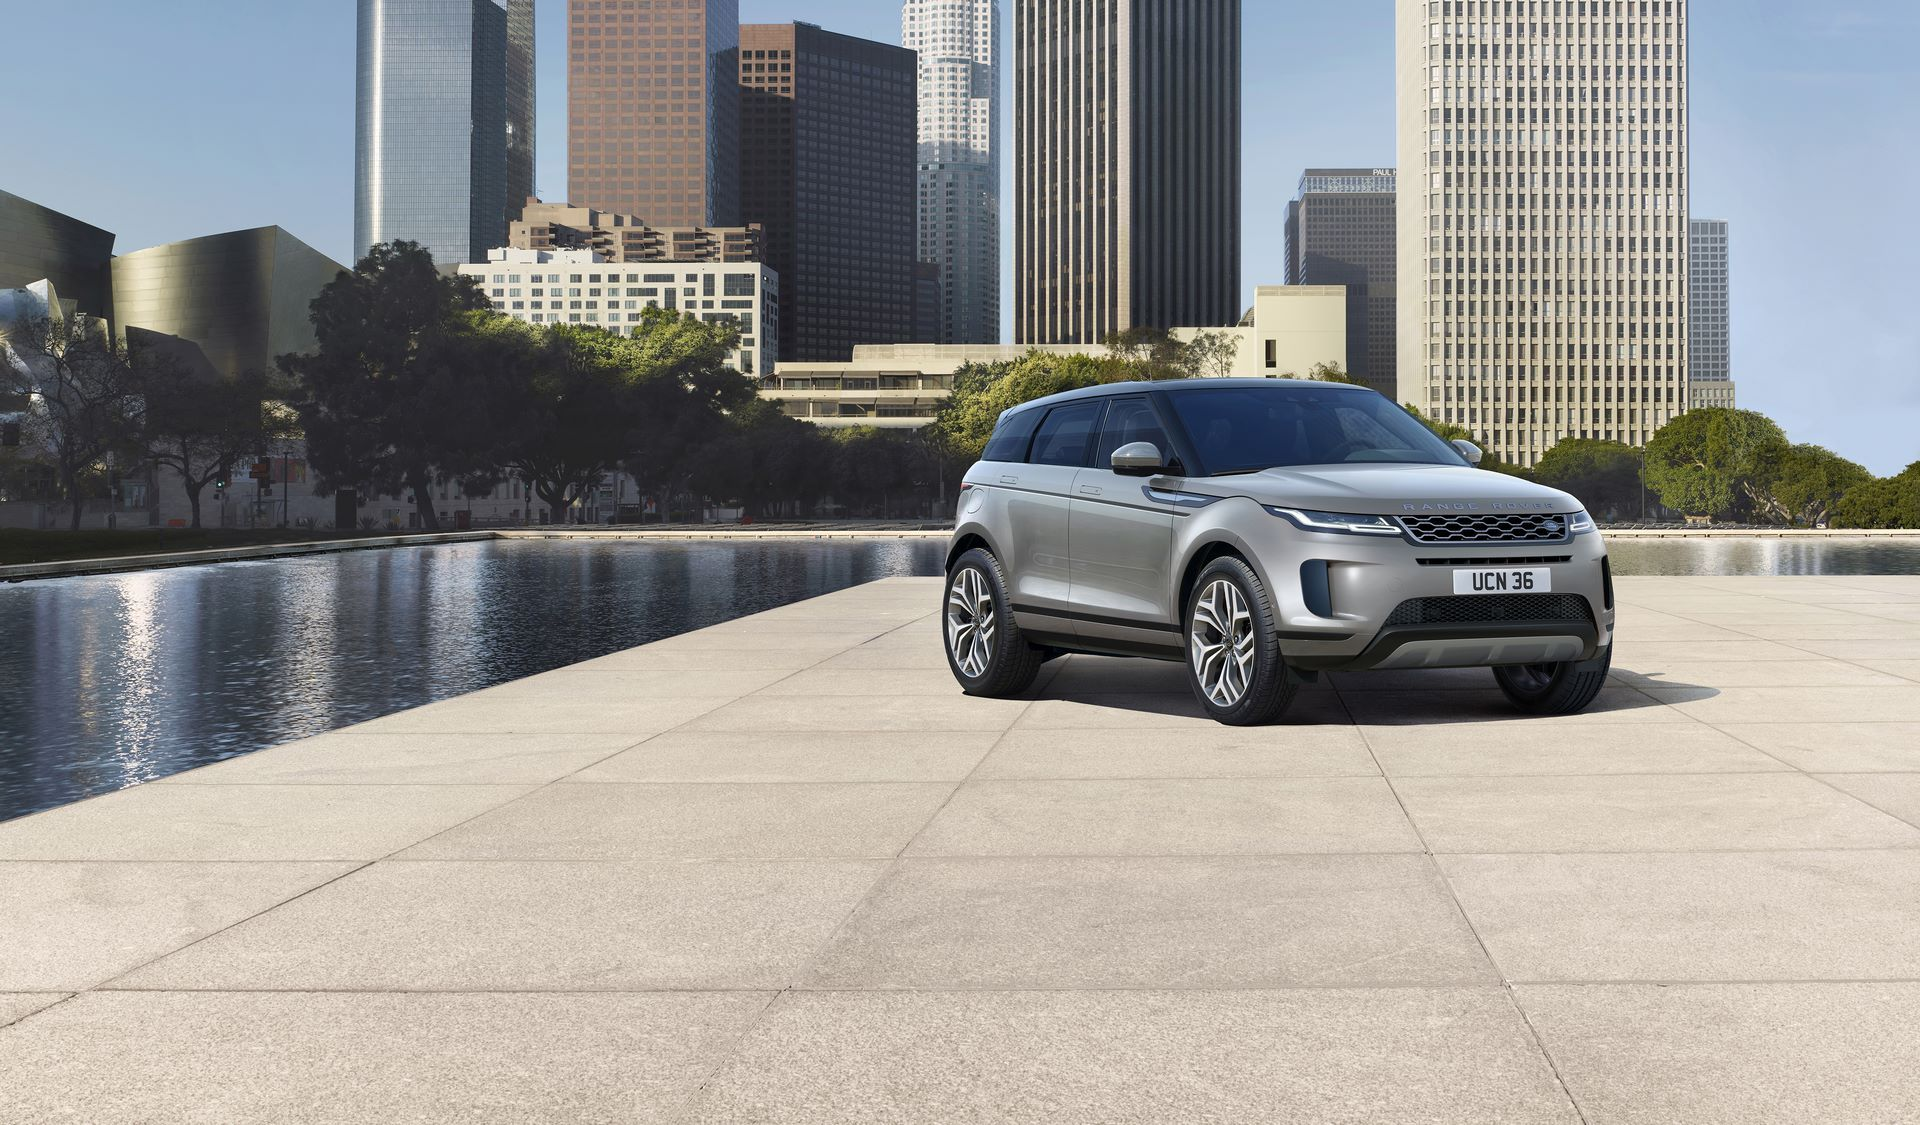 Range-Rover-Evoque-and-Land-Rover-Discovery-Sport-MHEV-diesel-41